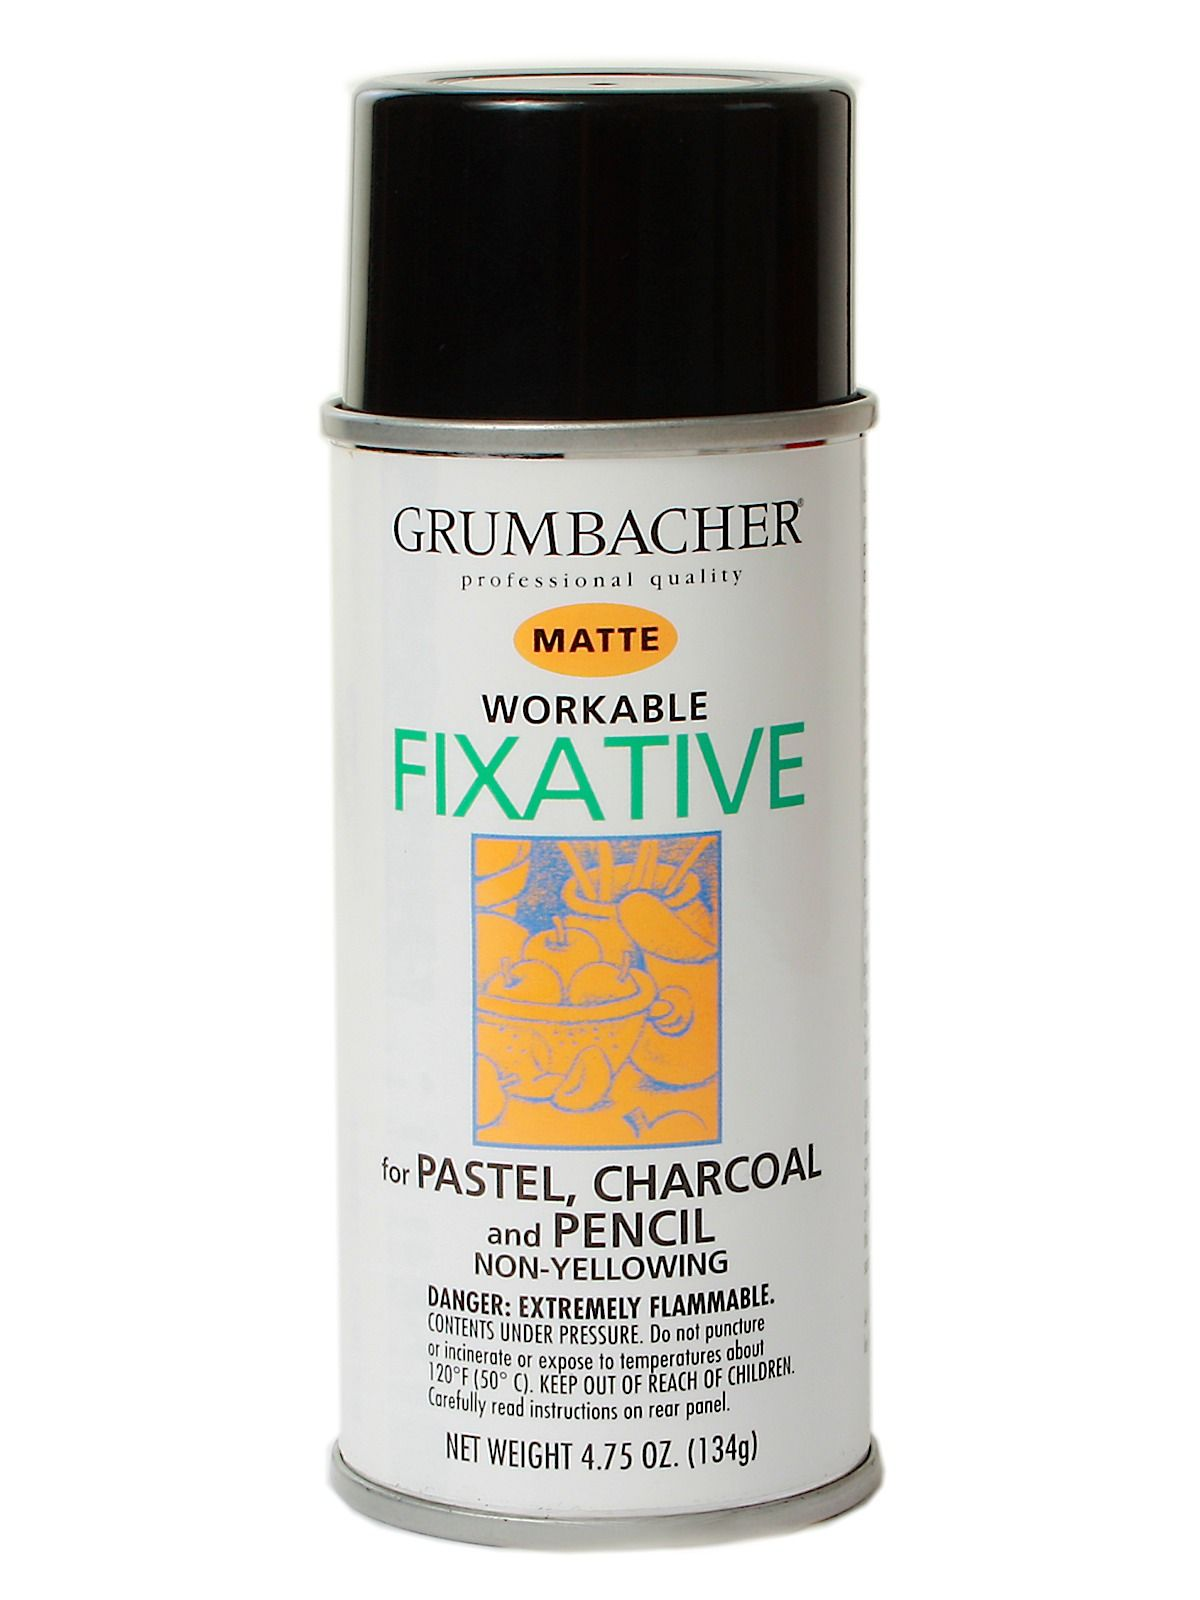 non glossy matte fixative for pastel charcoal and pencil created